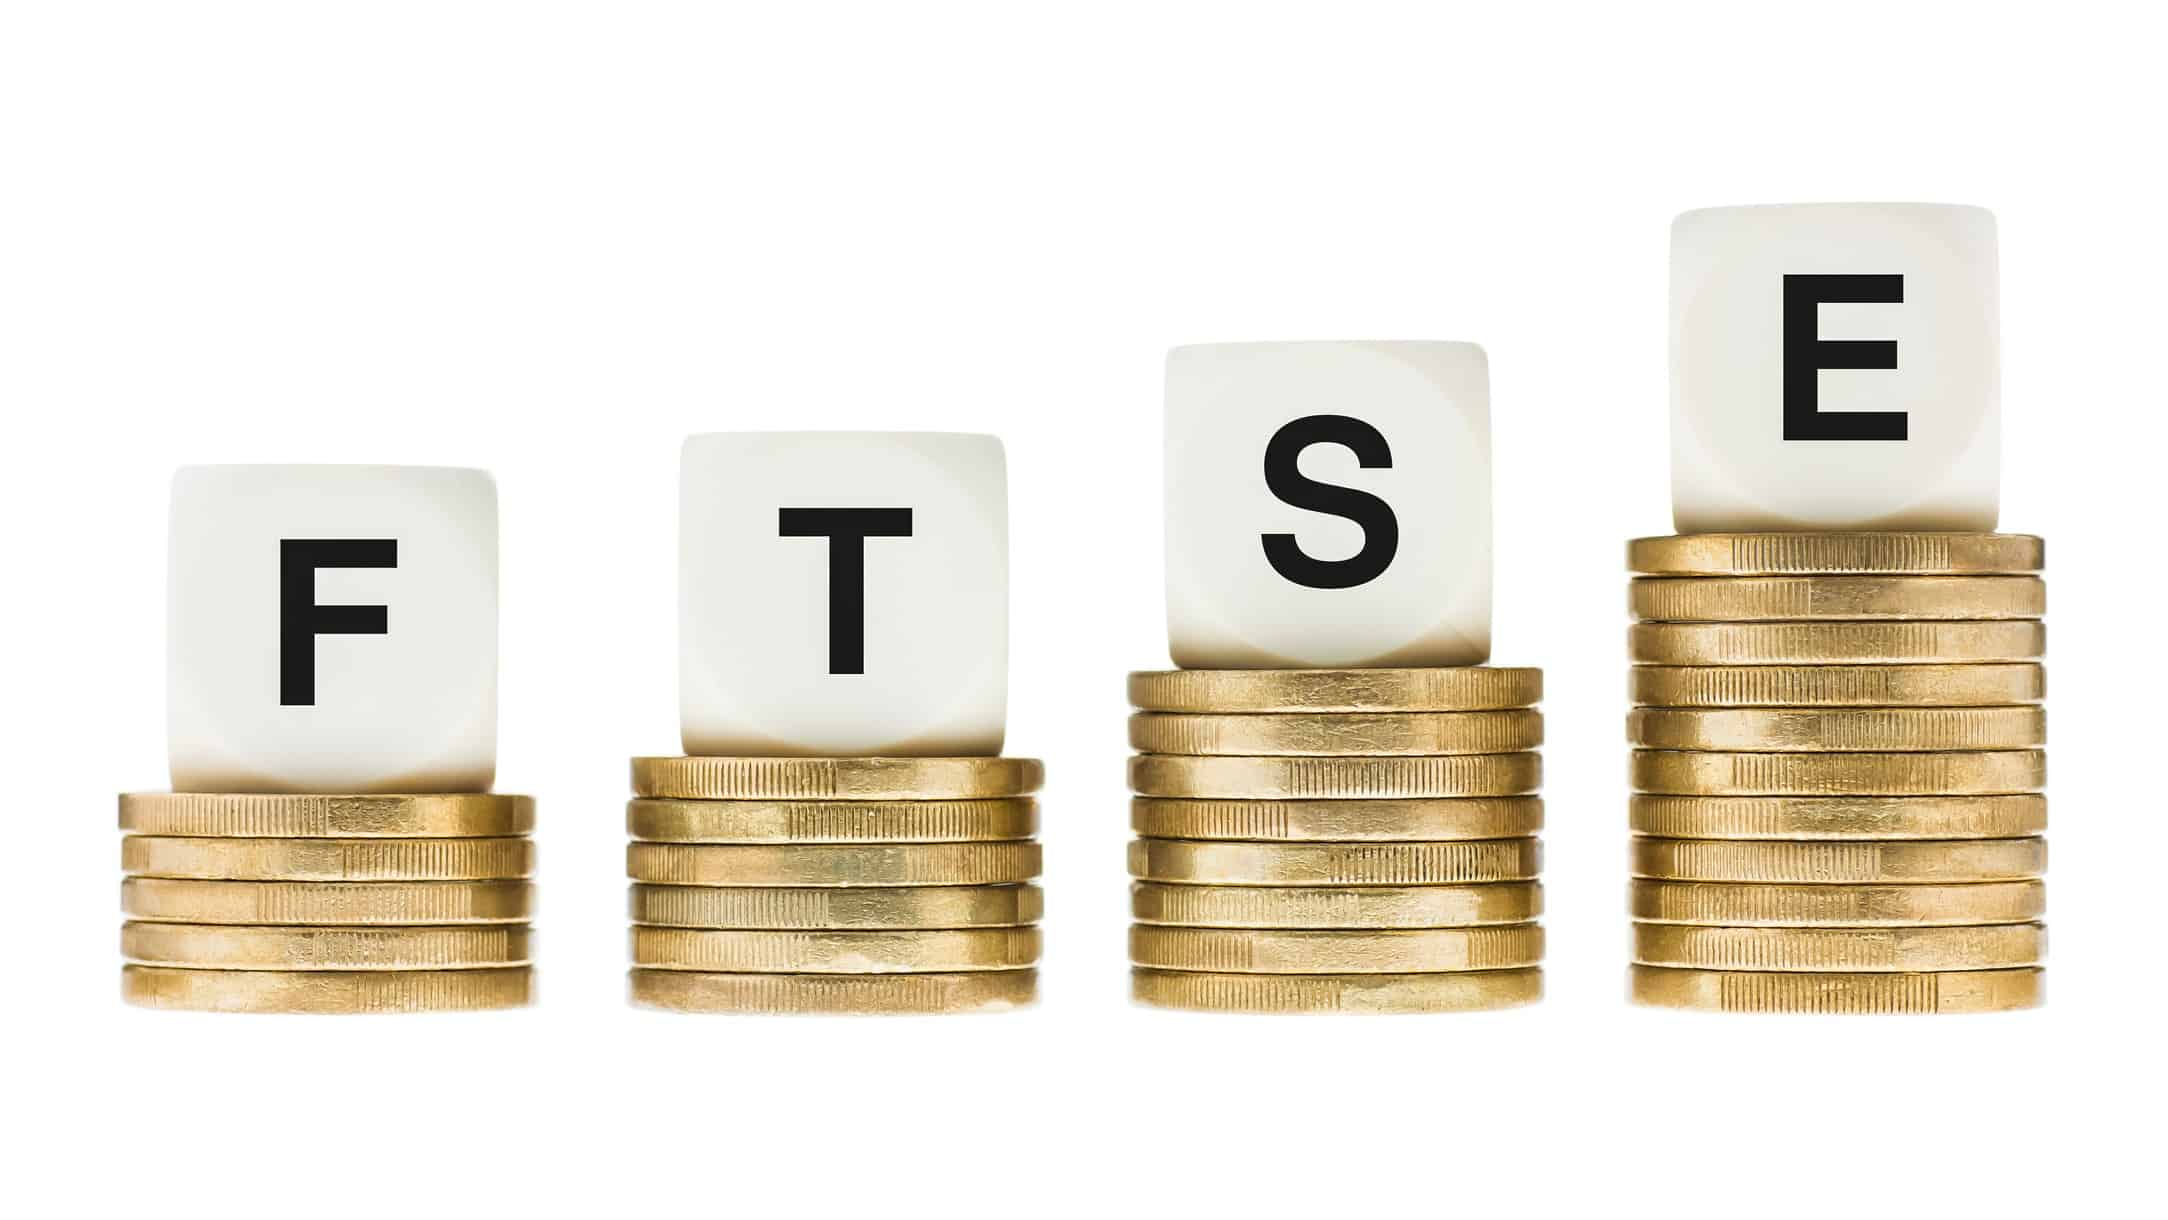 letter blocks spelling FTSE sitting atop growing piles of coins representing FTSE ETF